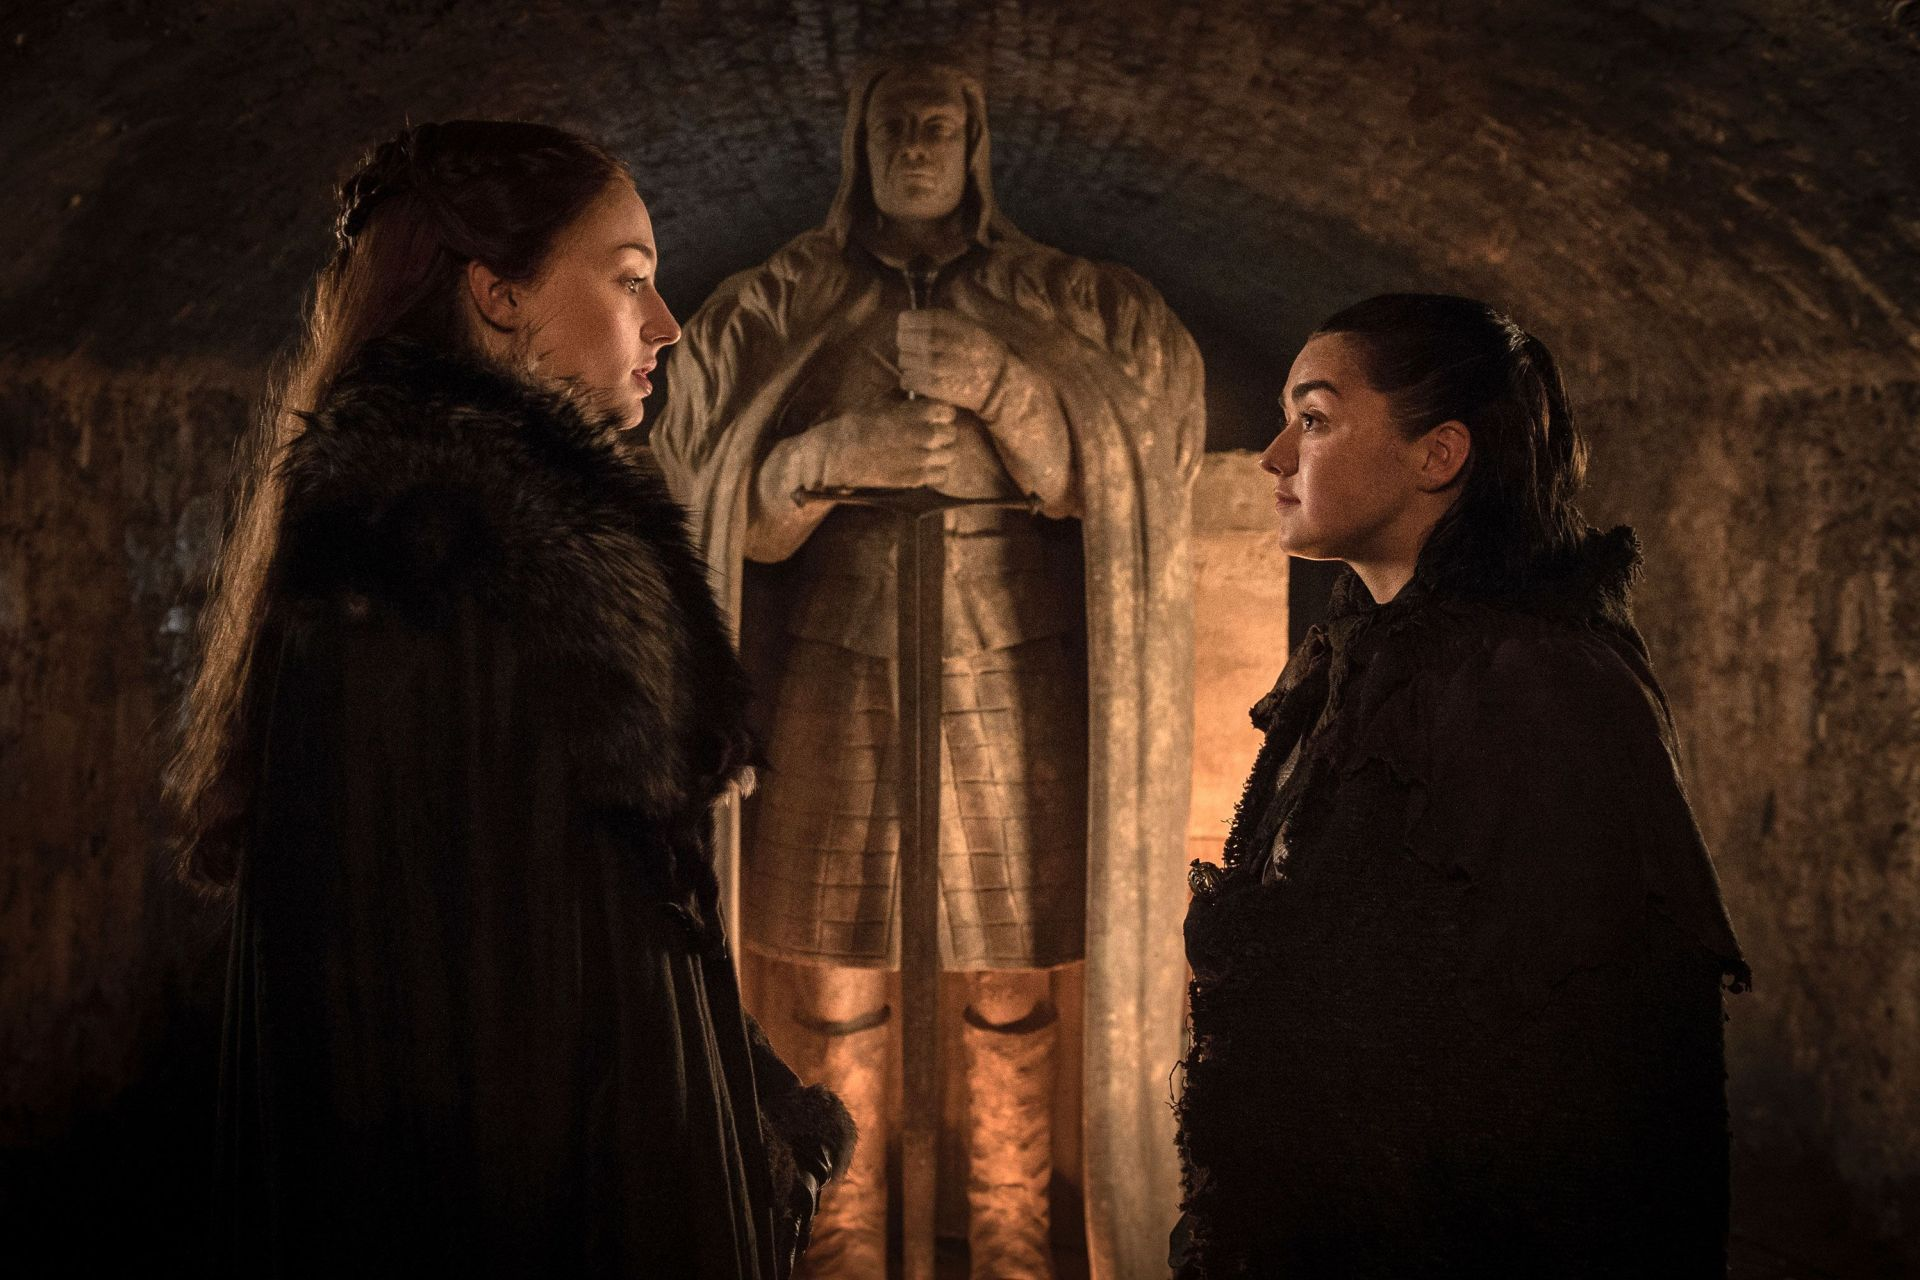 To My Fellow Women: Be Brave Like The Ladies Of The North